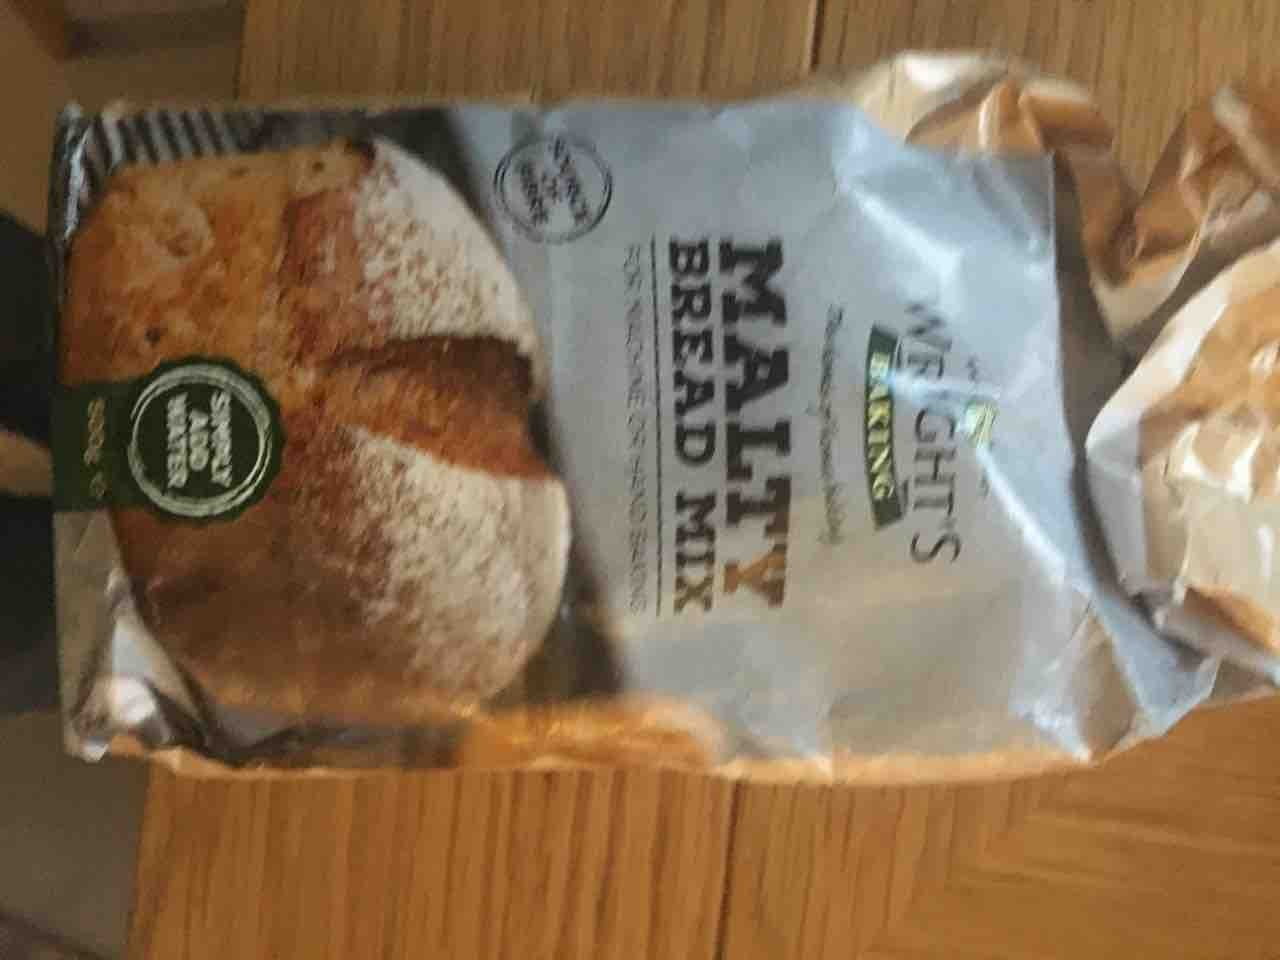 Wrights malty bread mix